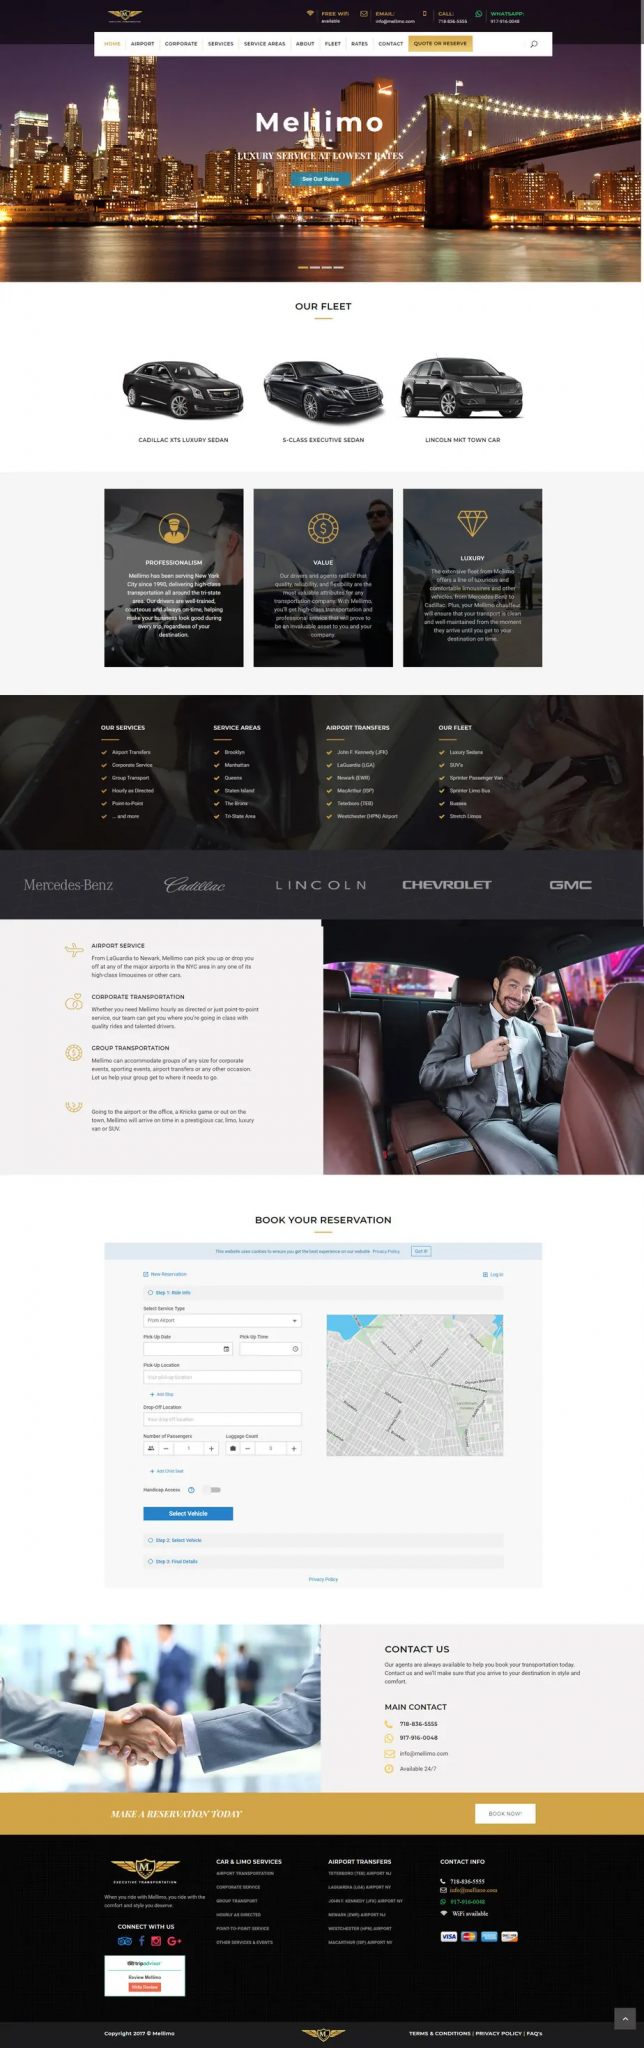 limousine-home-page